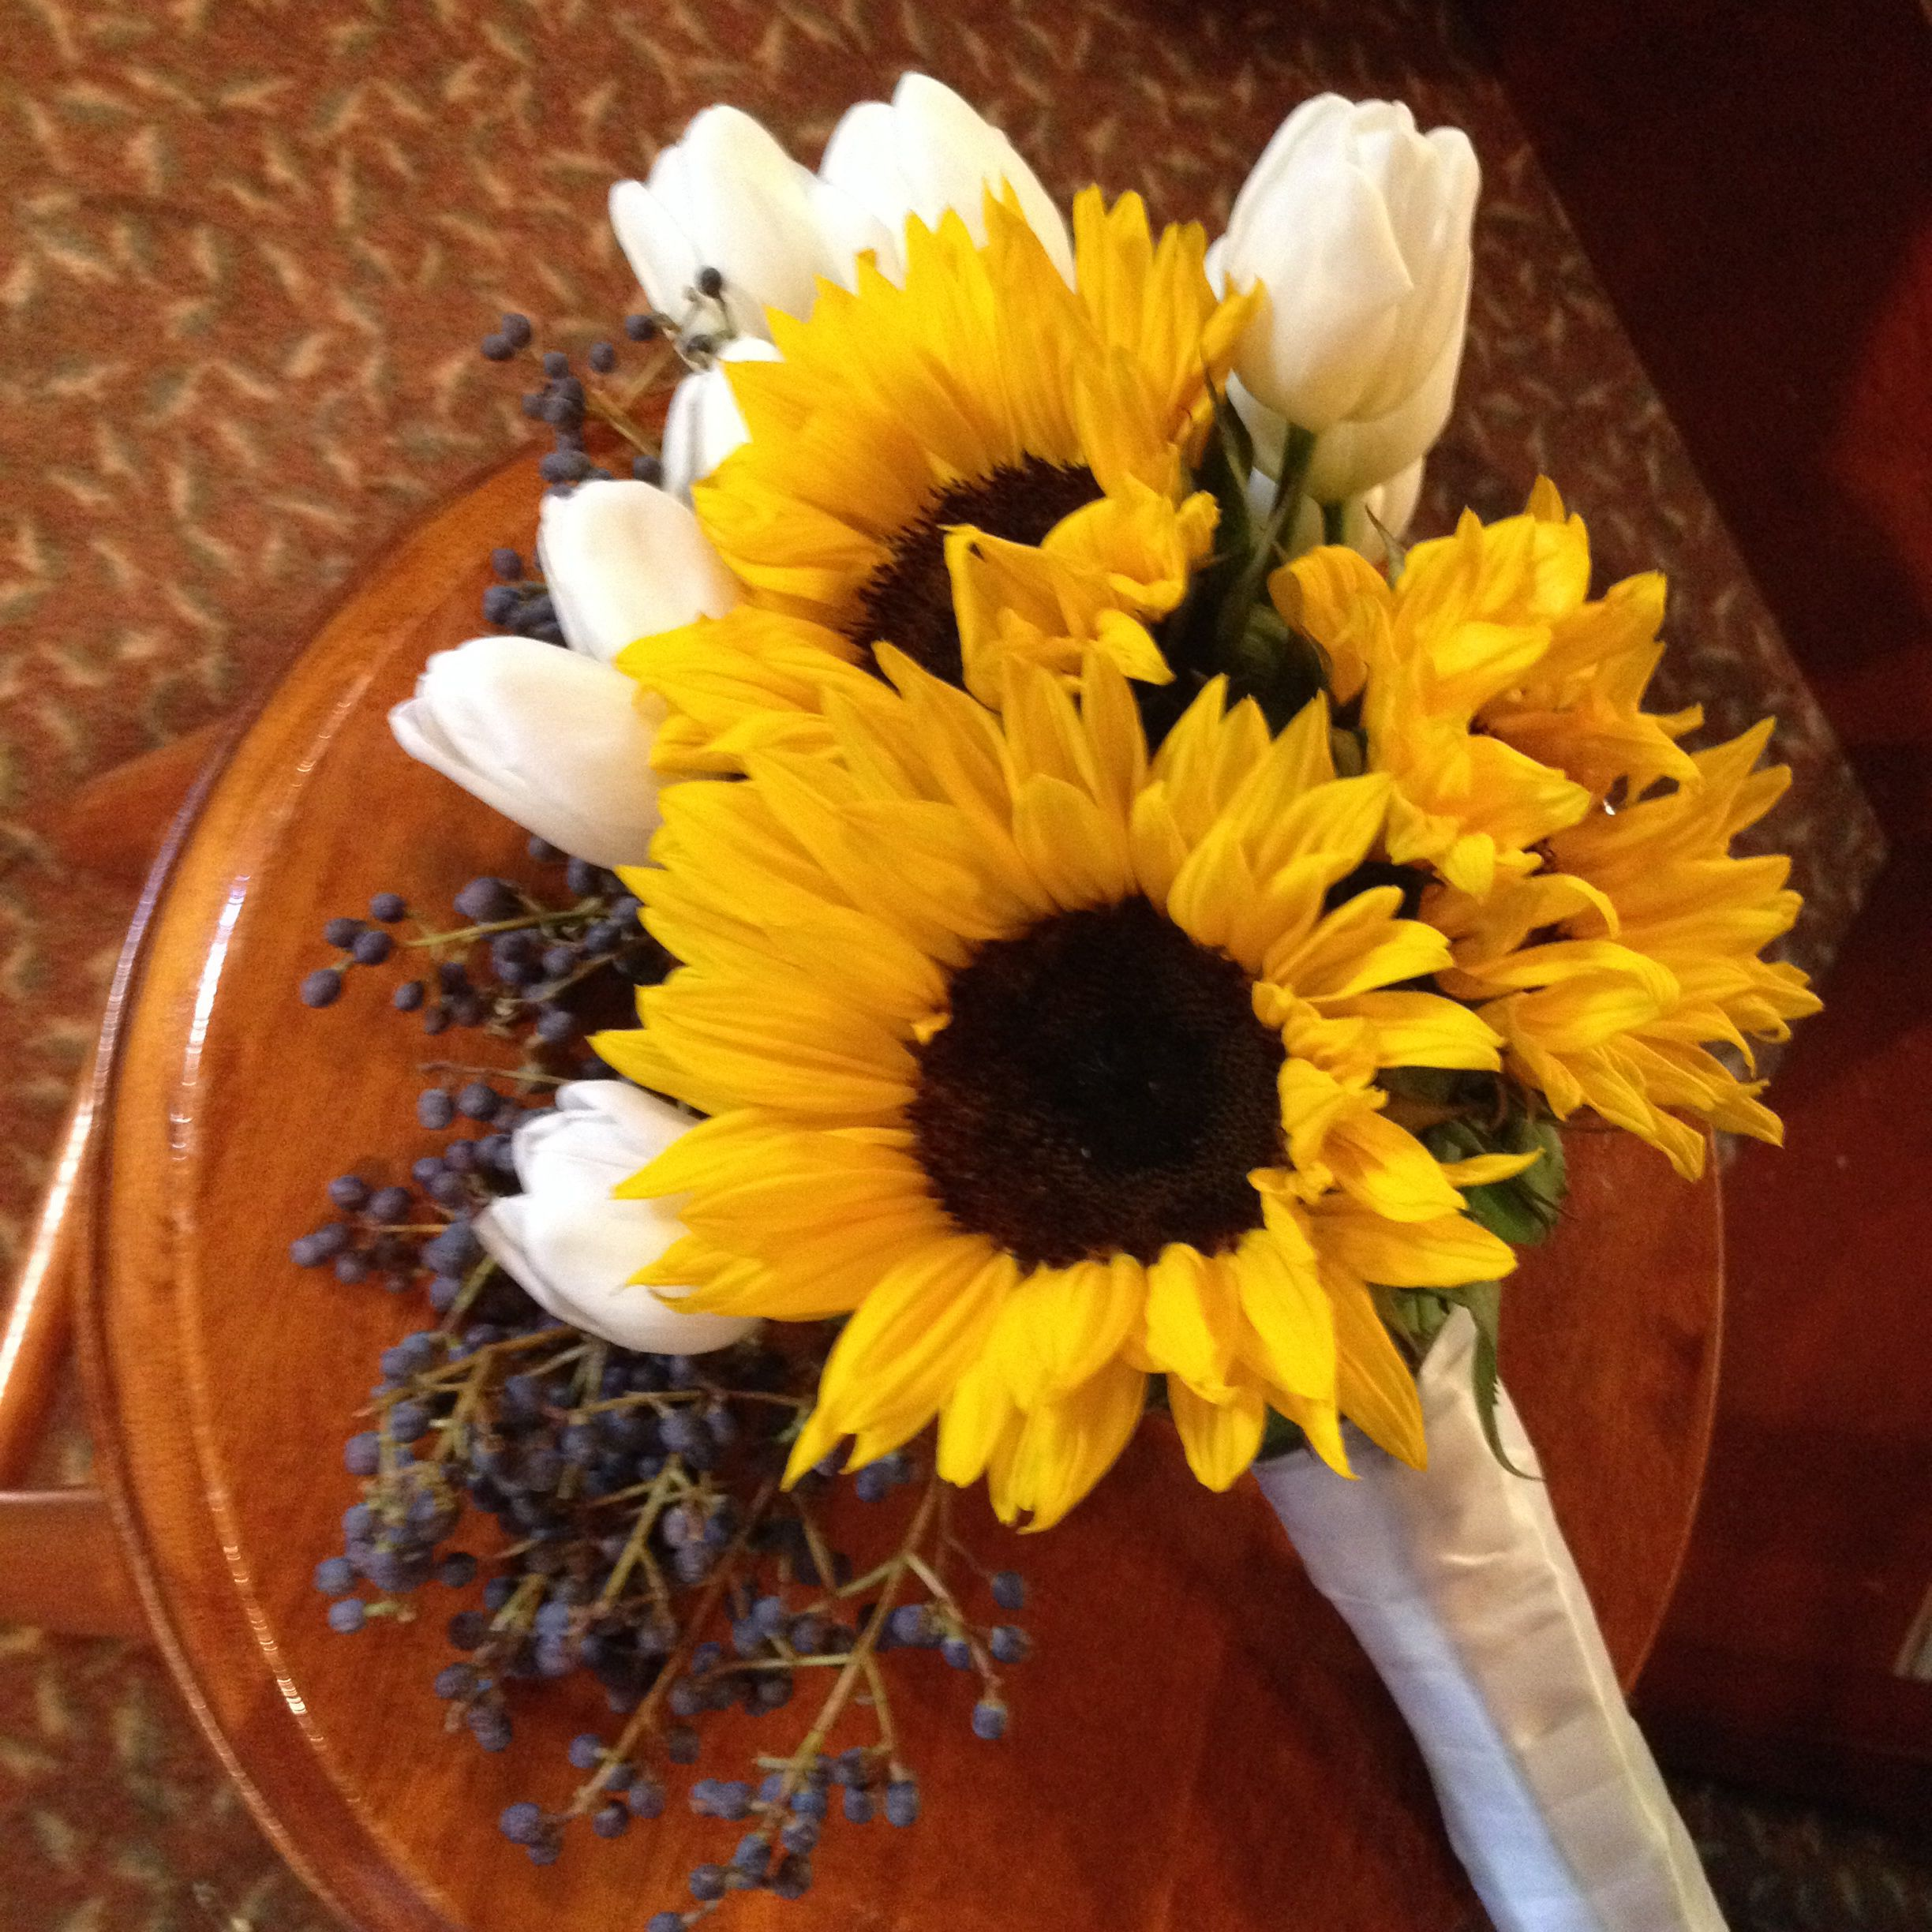 Bouquet With Sunflowers, White Tulips And Privet Berries